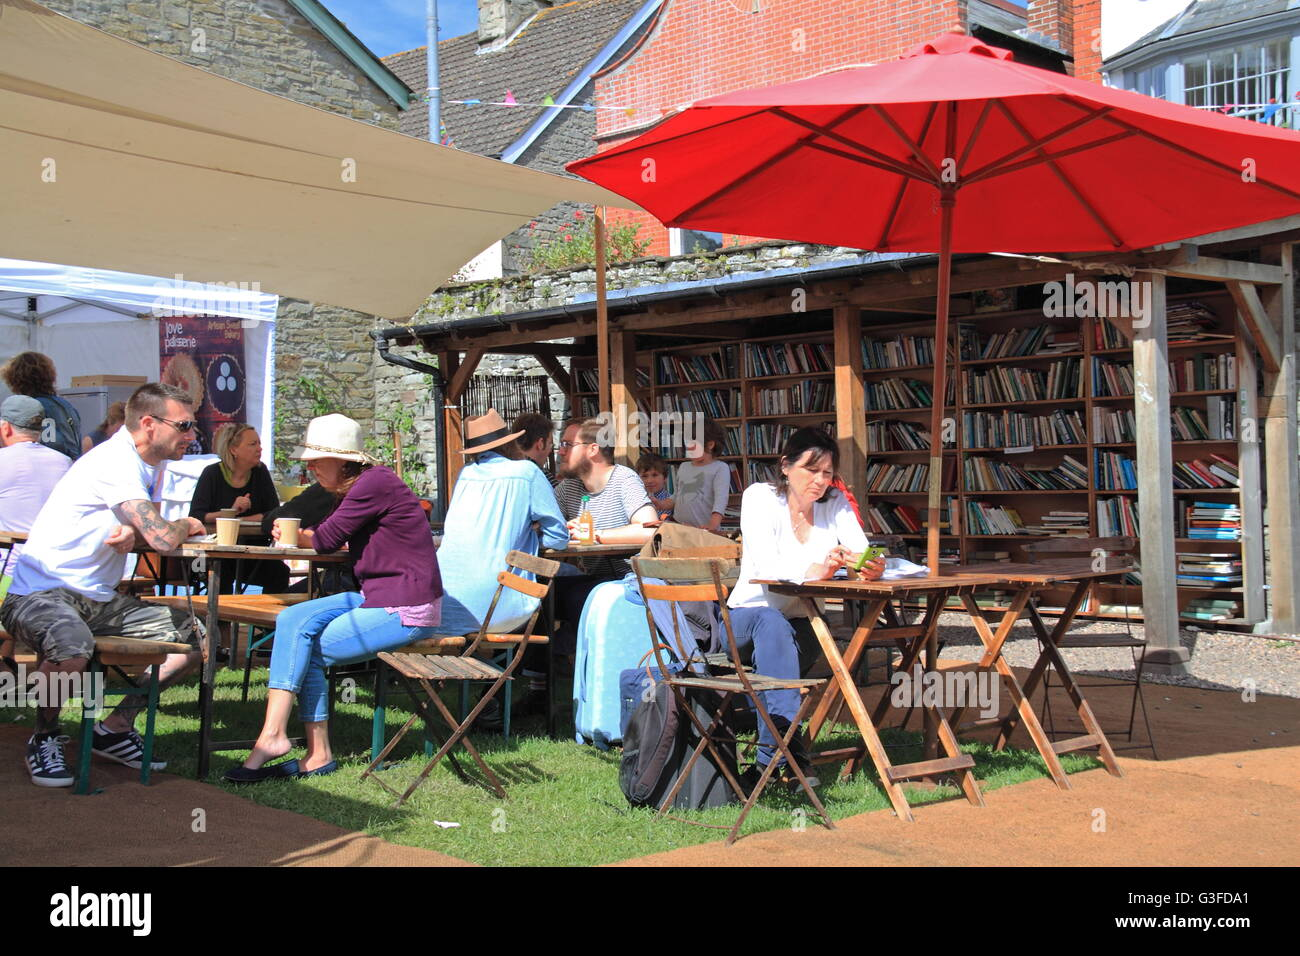 Castle Street Food Market, Hay Castle, Hay-on-Wye, Powys, Wales, Great Britain, United Kingdom, UK, Europe - Stock Image